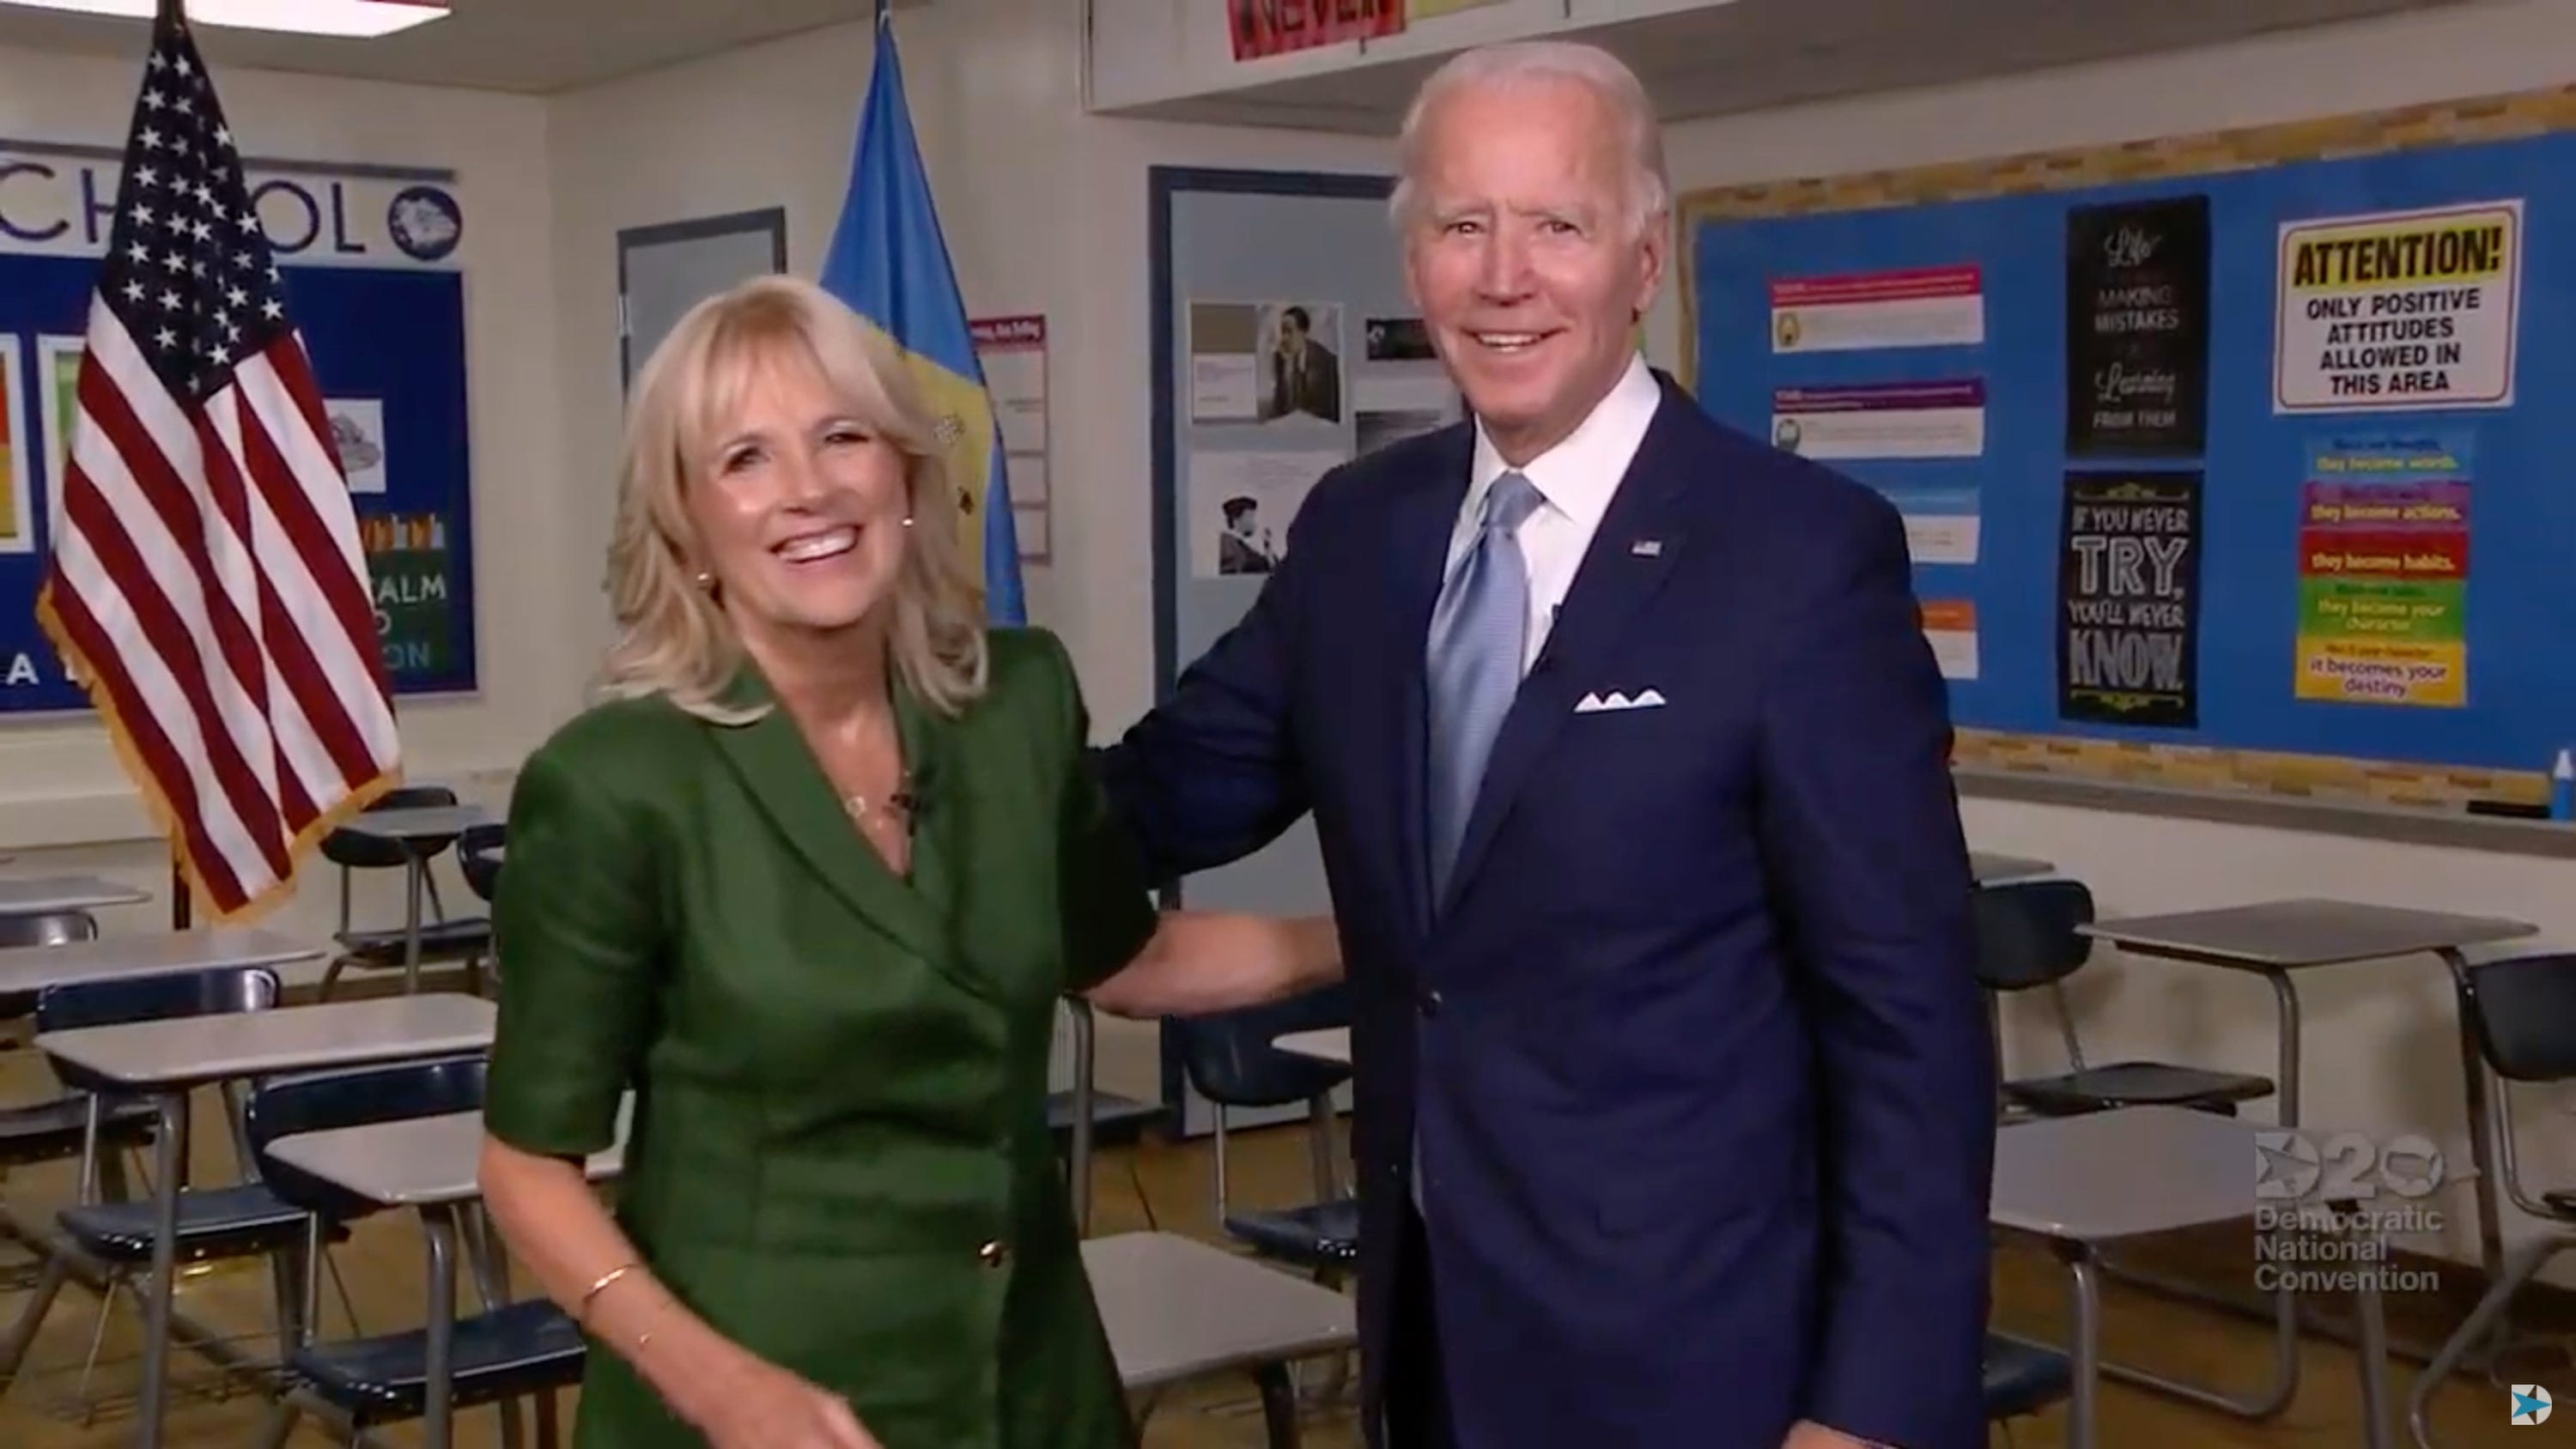 Dnc Top Moments Jill Biden Shares Intimate Portrayal Of Joe Biden Bill Clinton Hits Trump